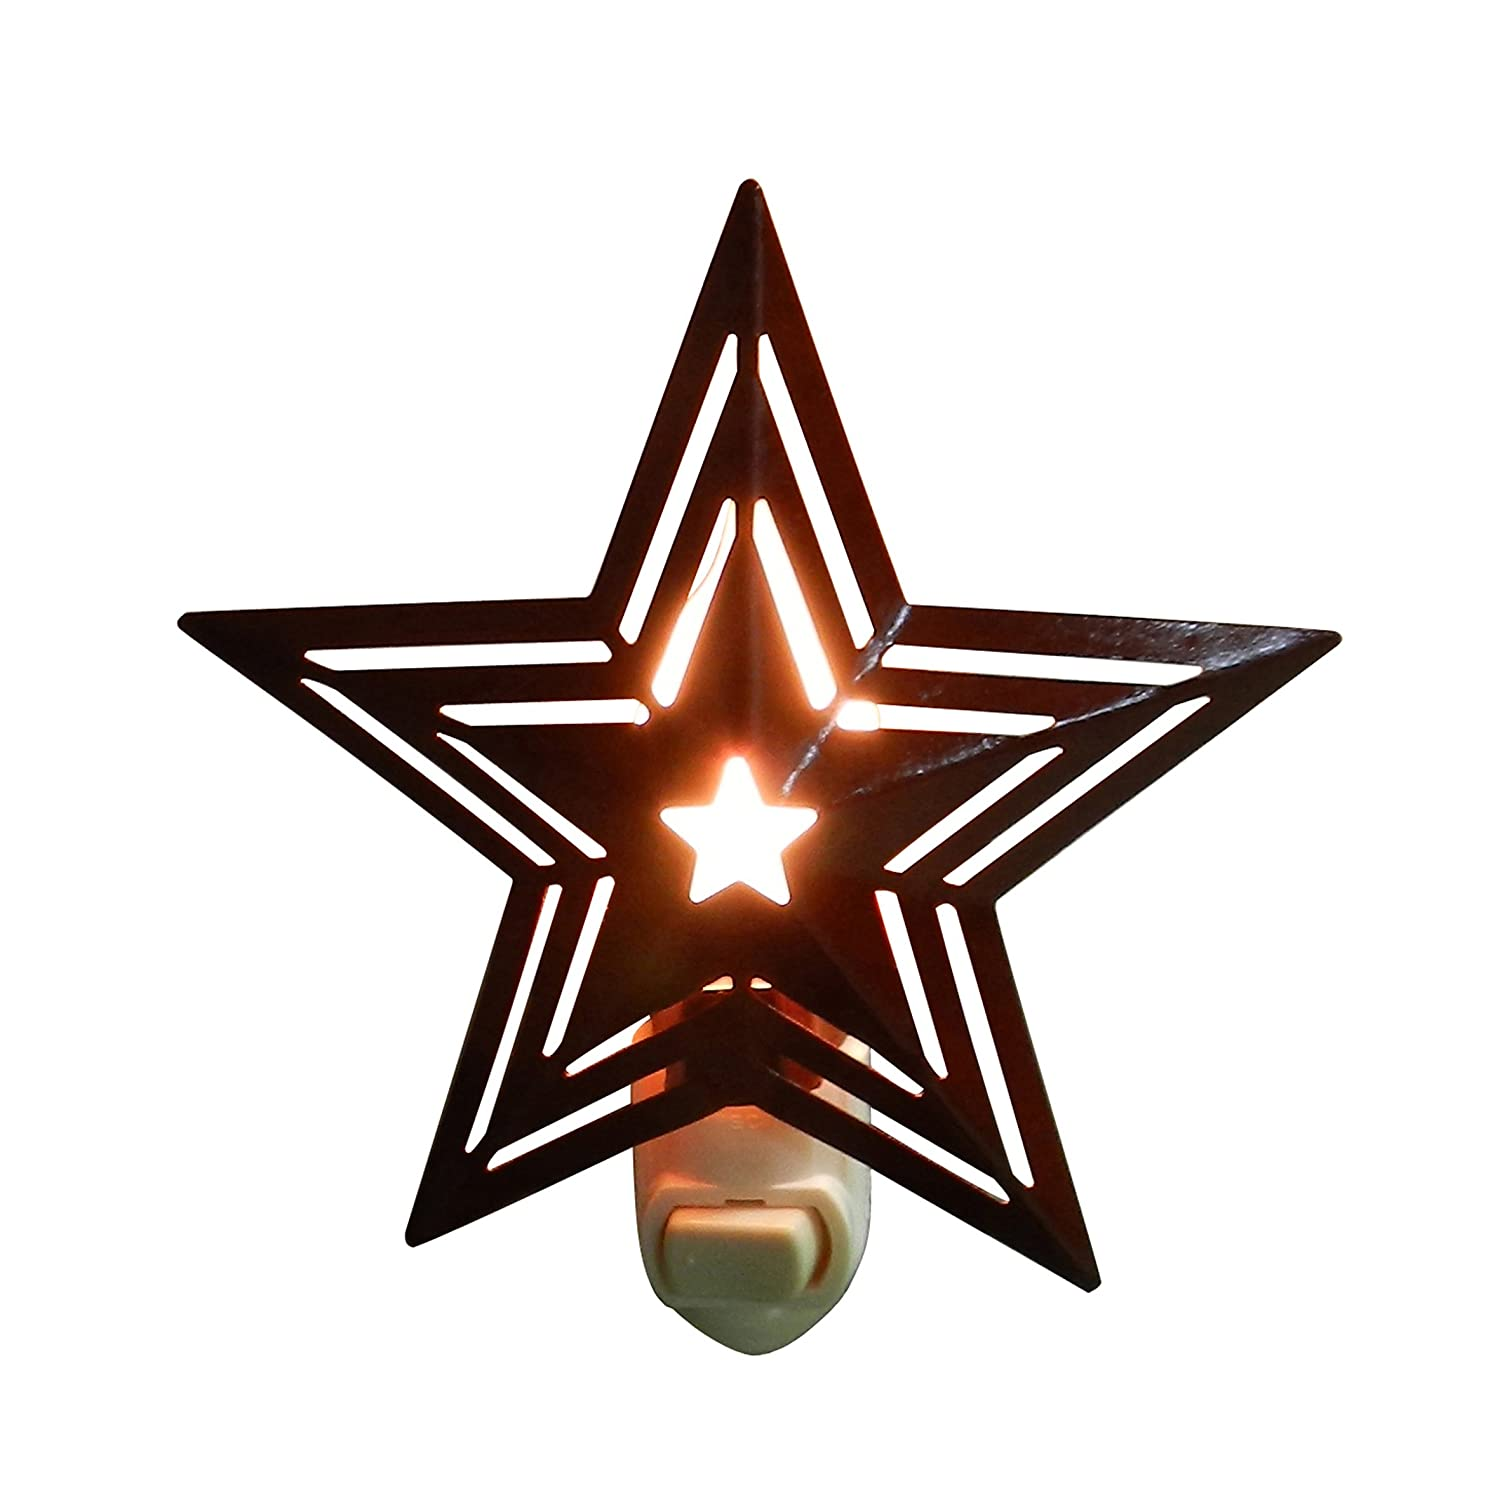 cvhomedeco。BurgundyパンチTin Barn Star with Stripes Electric Night Light、7ワットシリコンCandle Bulb Included、2のセット。 B07196P3Z8